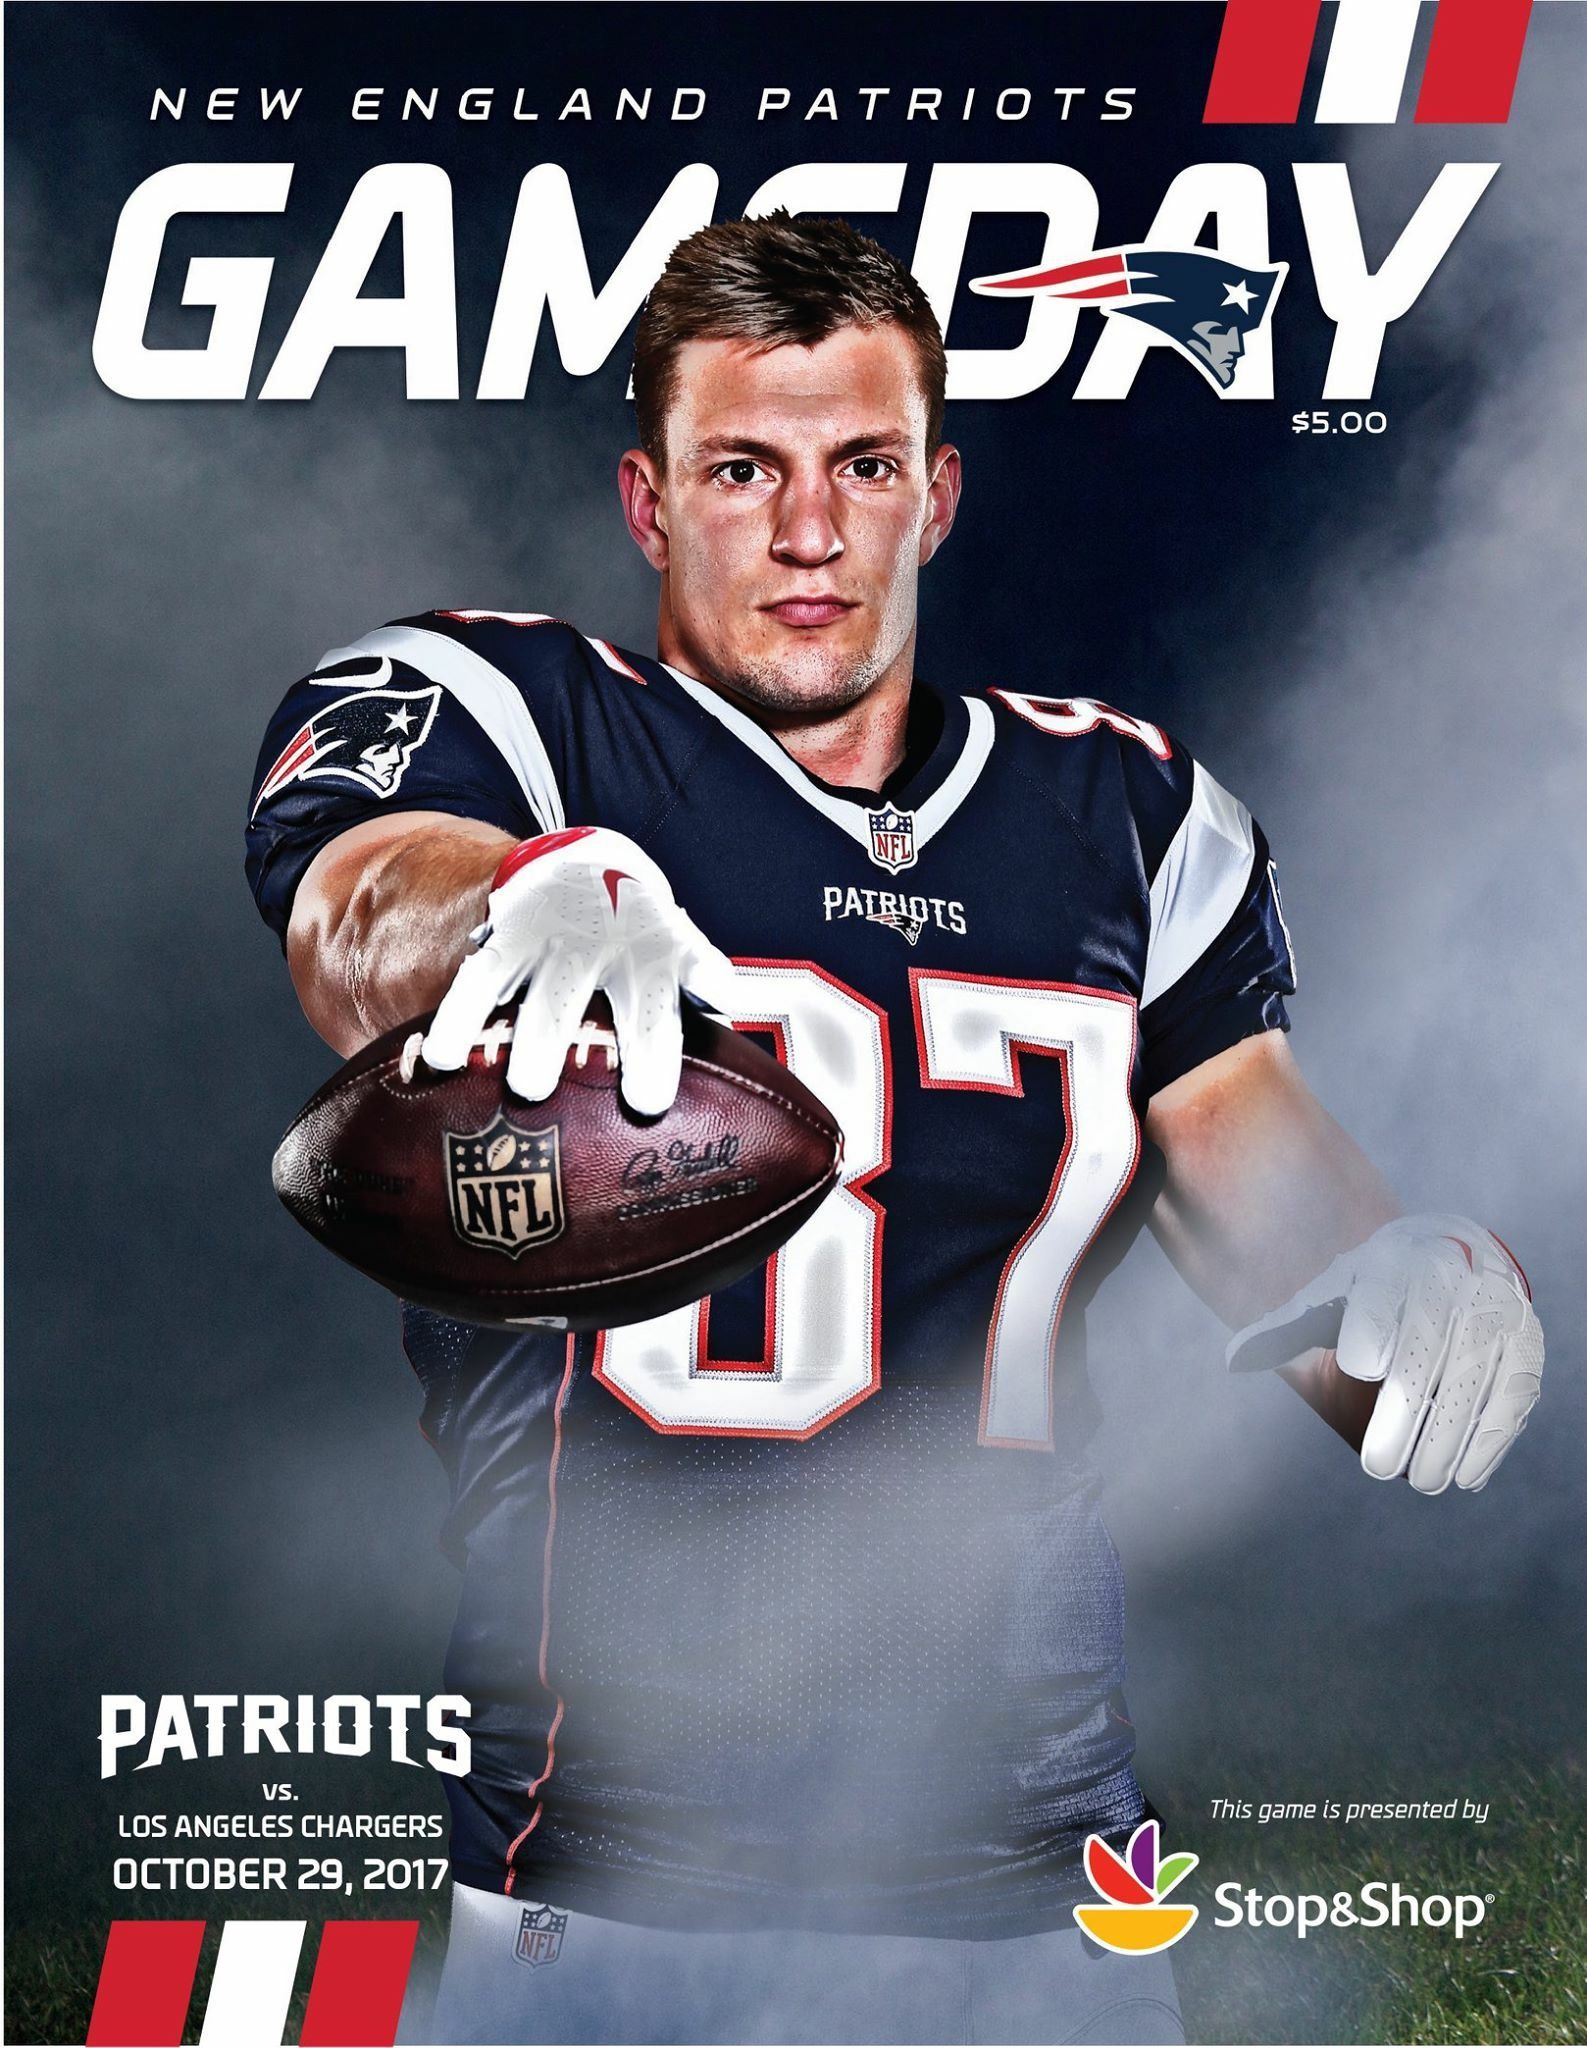 Gameday Program Cover Gronk Week8 Lavsne Letsgo New England Patriots New England Patriots Merchandise New England Patroits